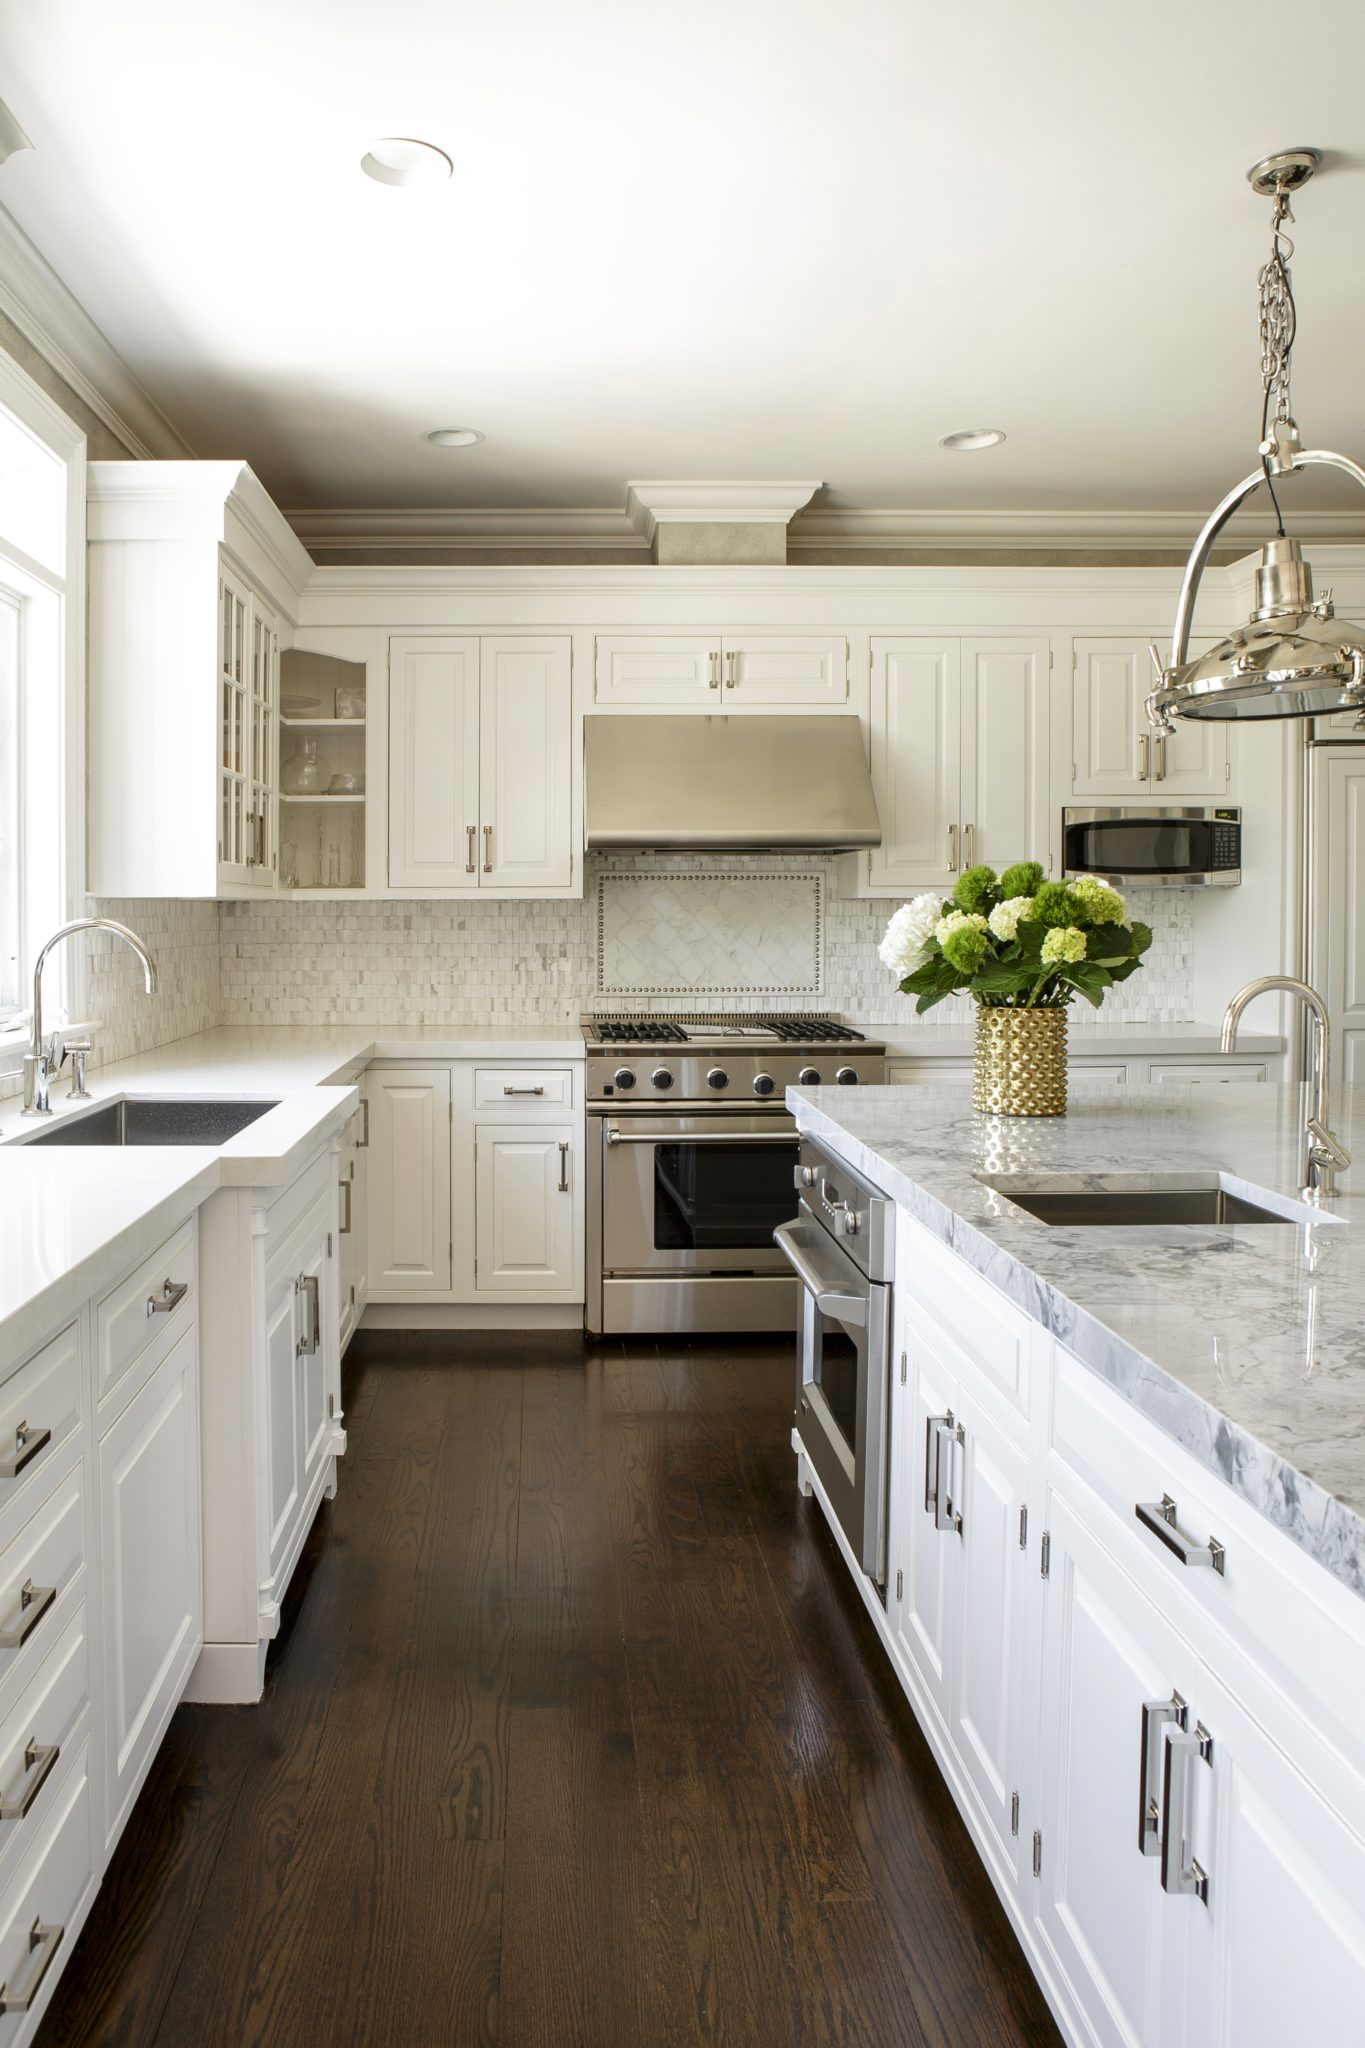 Traditional transitional kitchen with white cabinets, marble countertops and dark flooring by Laura Michaels Design